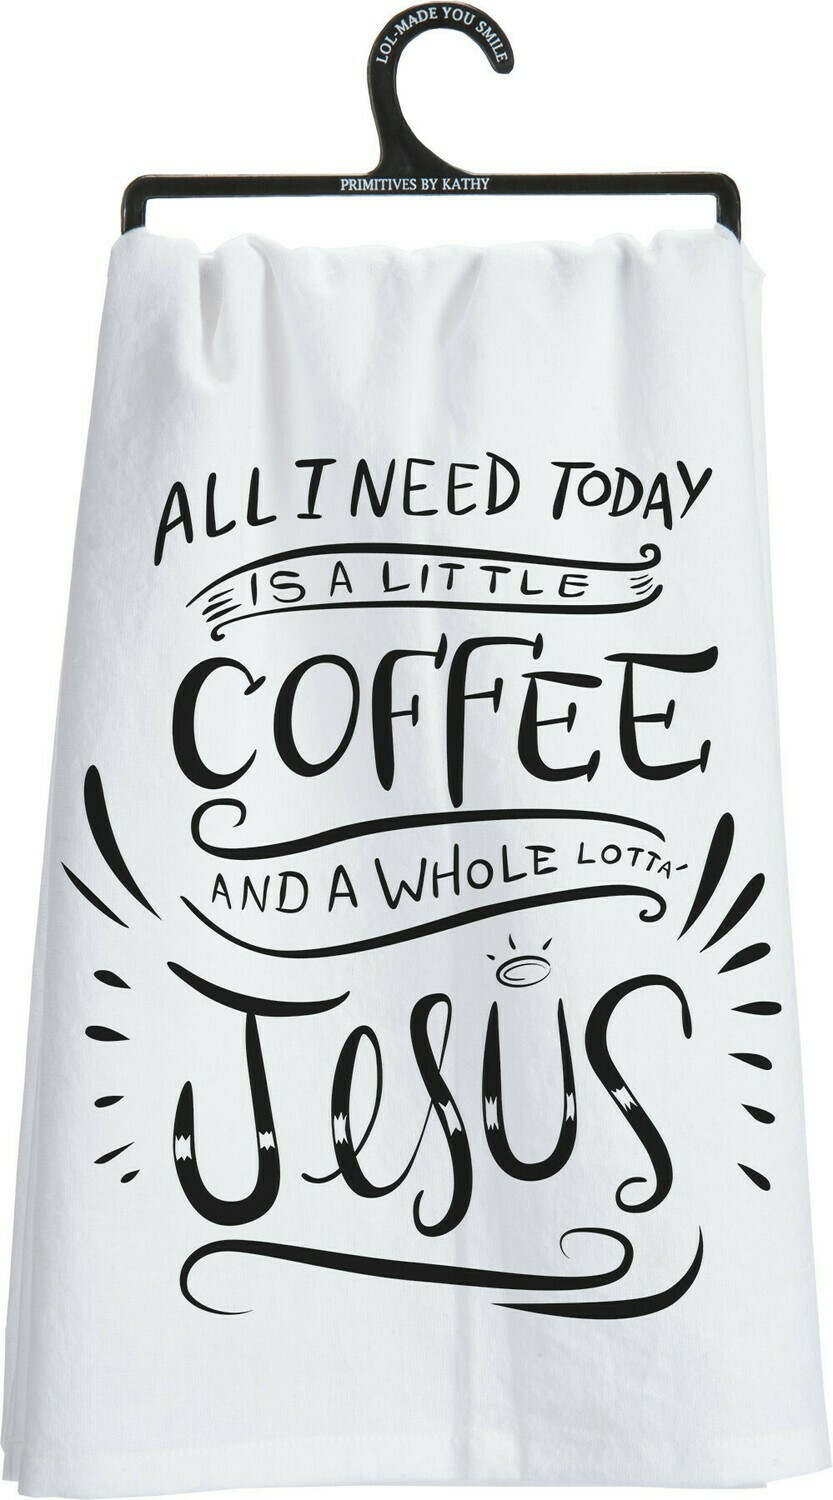 A Little Coffee and a Whole Lot of Jesus Dish Towel